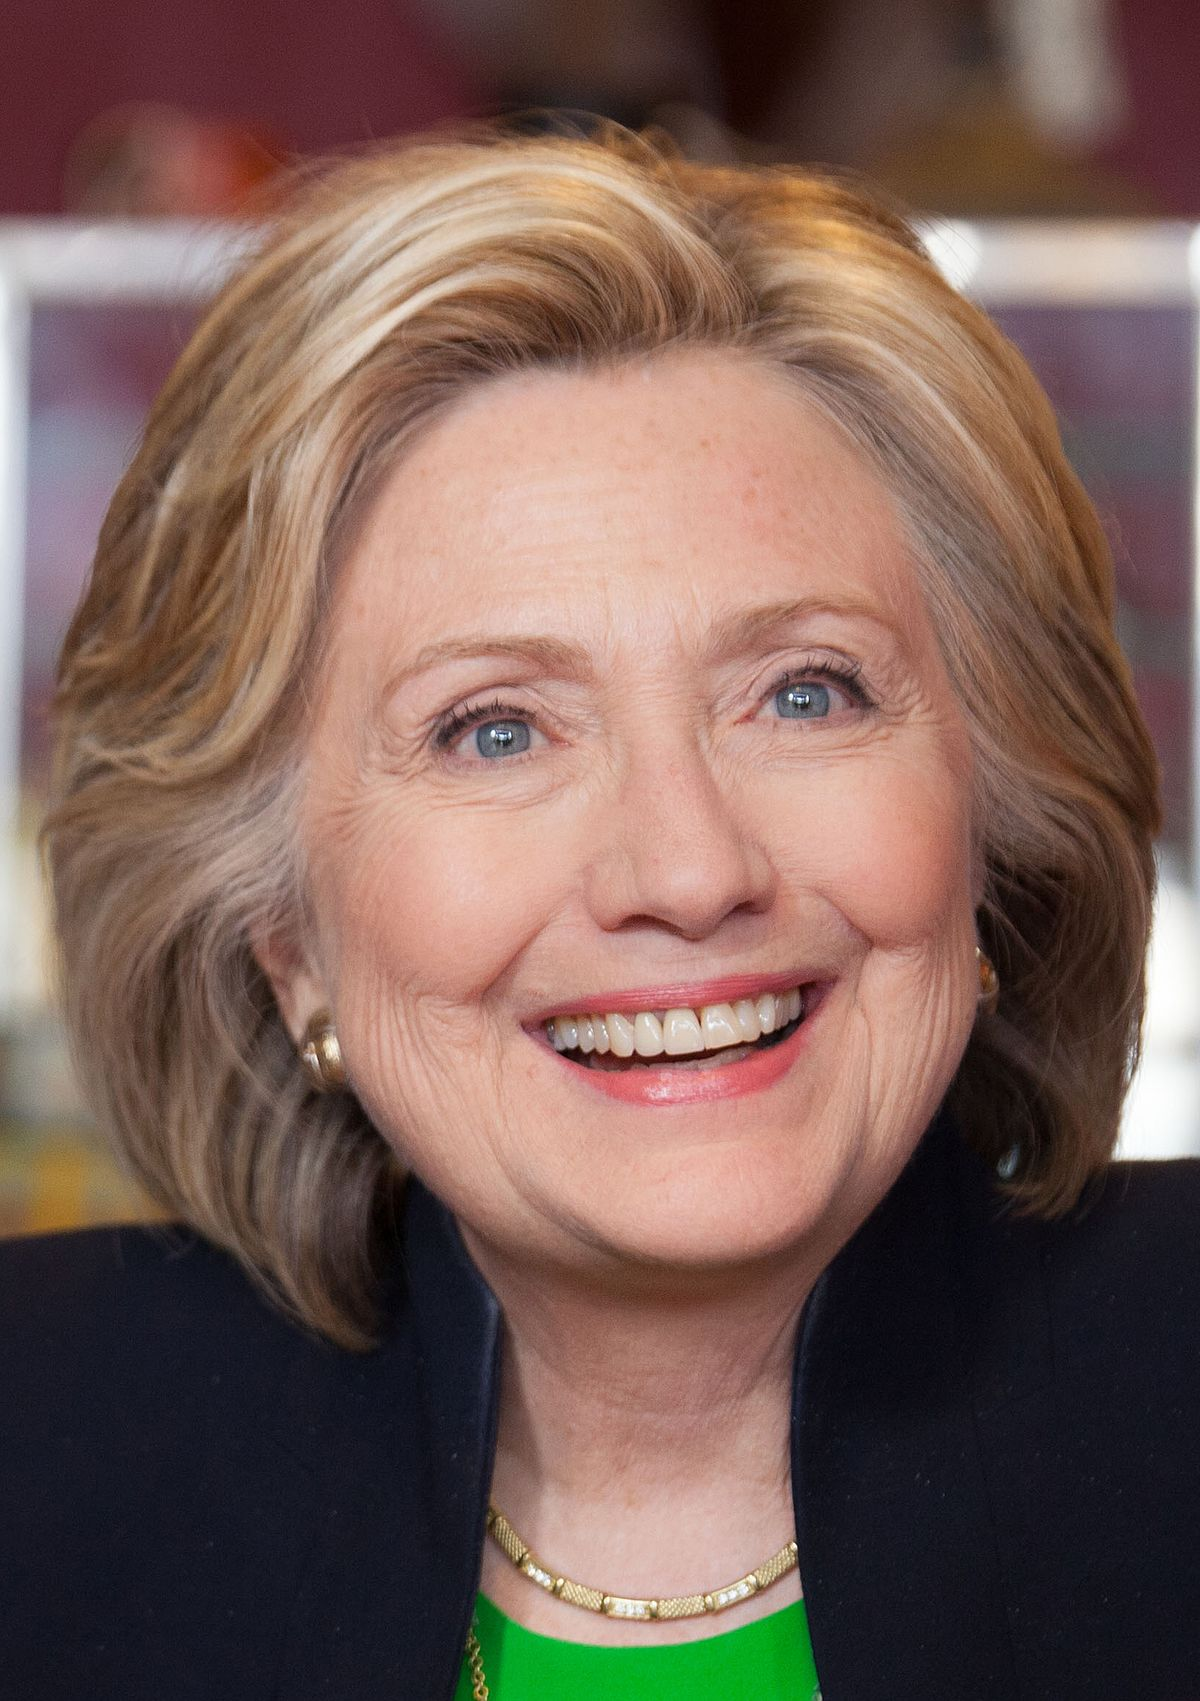 [Image: 1200px-HRC_in_Iowa_APR_2015.jpg]